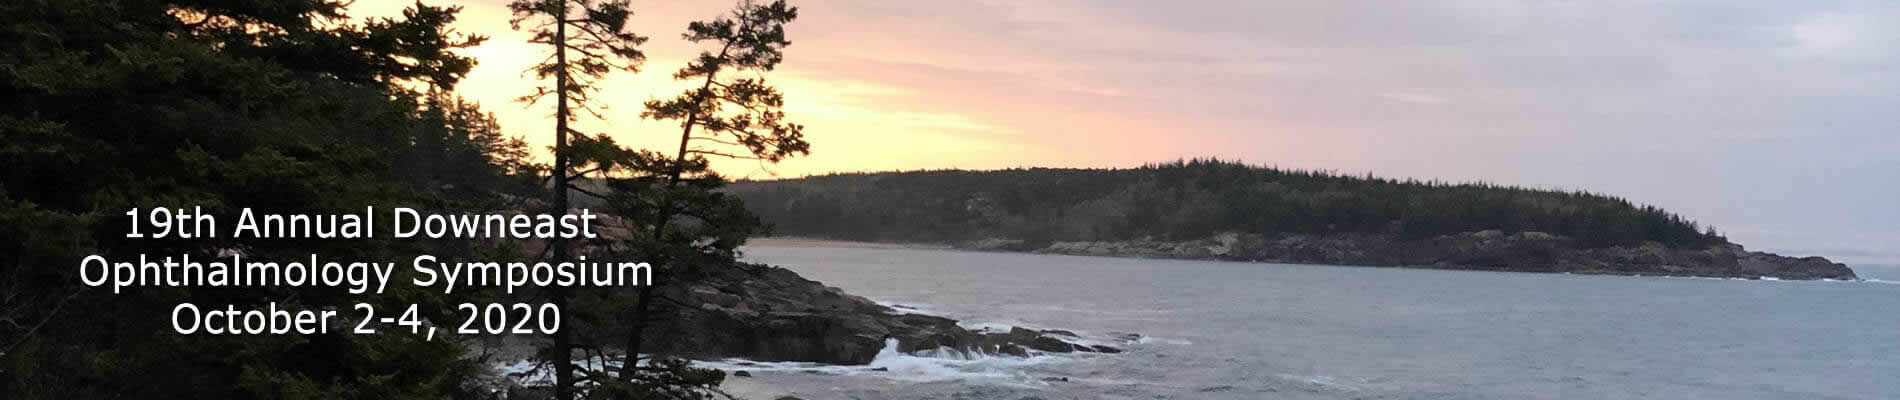 Link to the 19th Annual Downeast Ophthalmology Symposium.